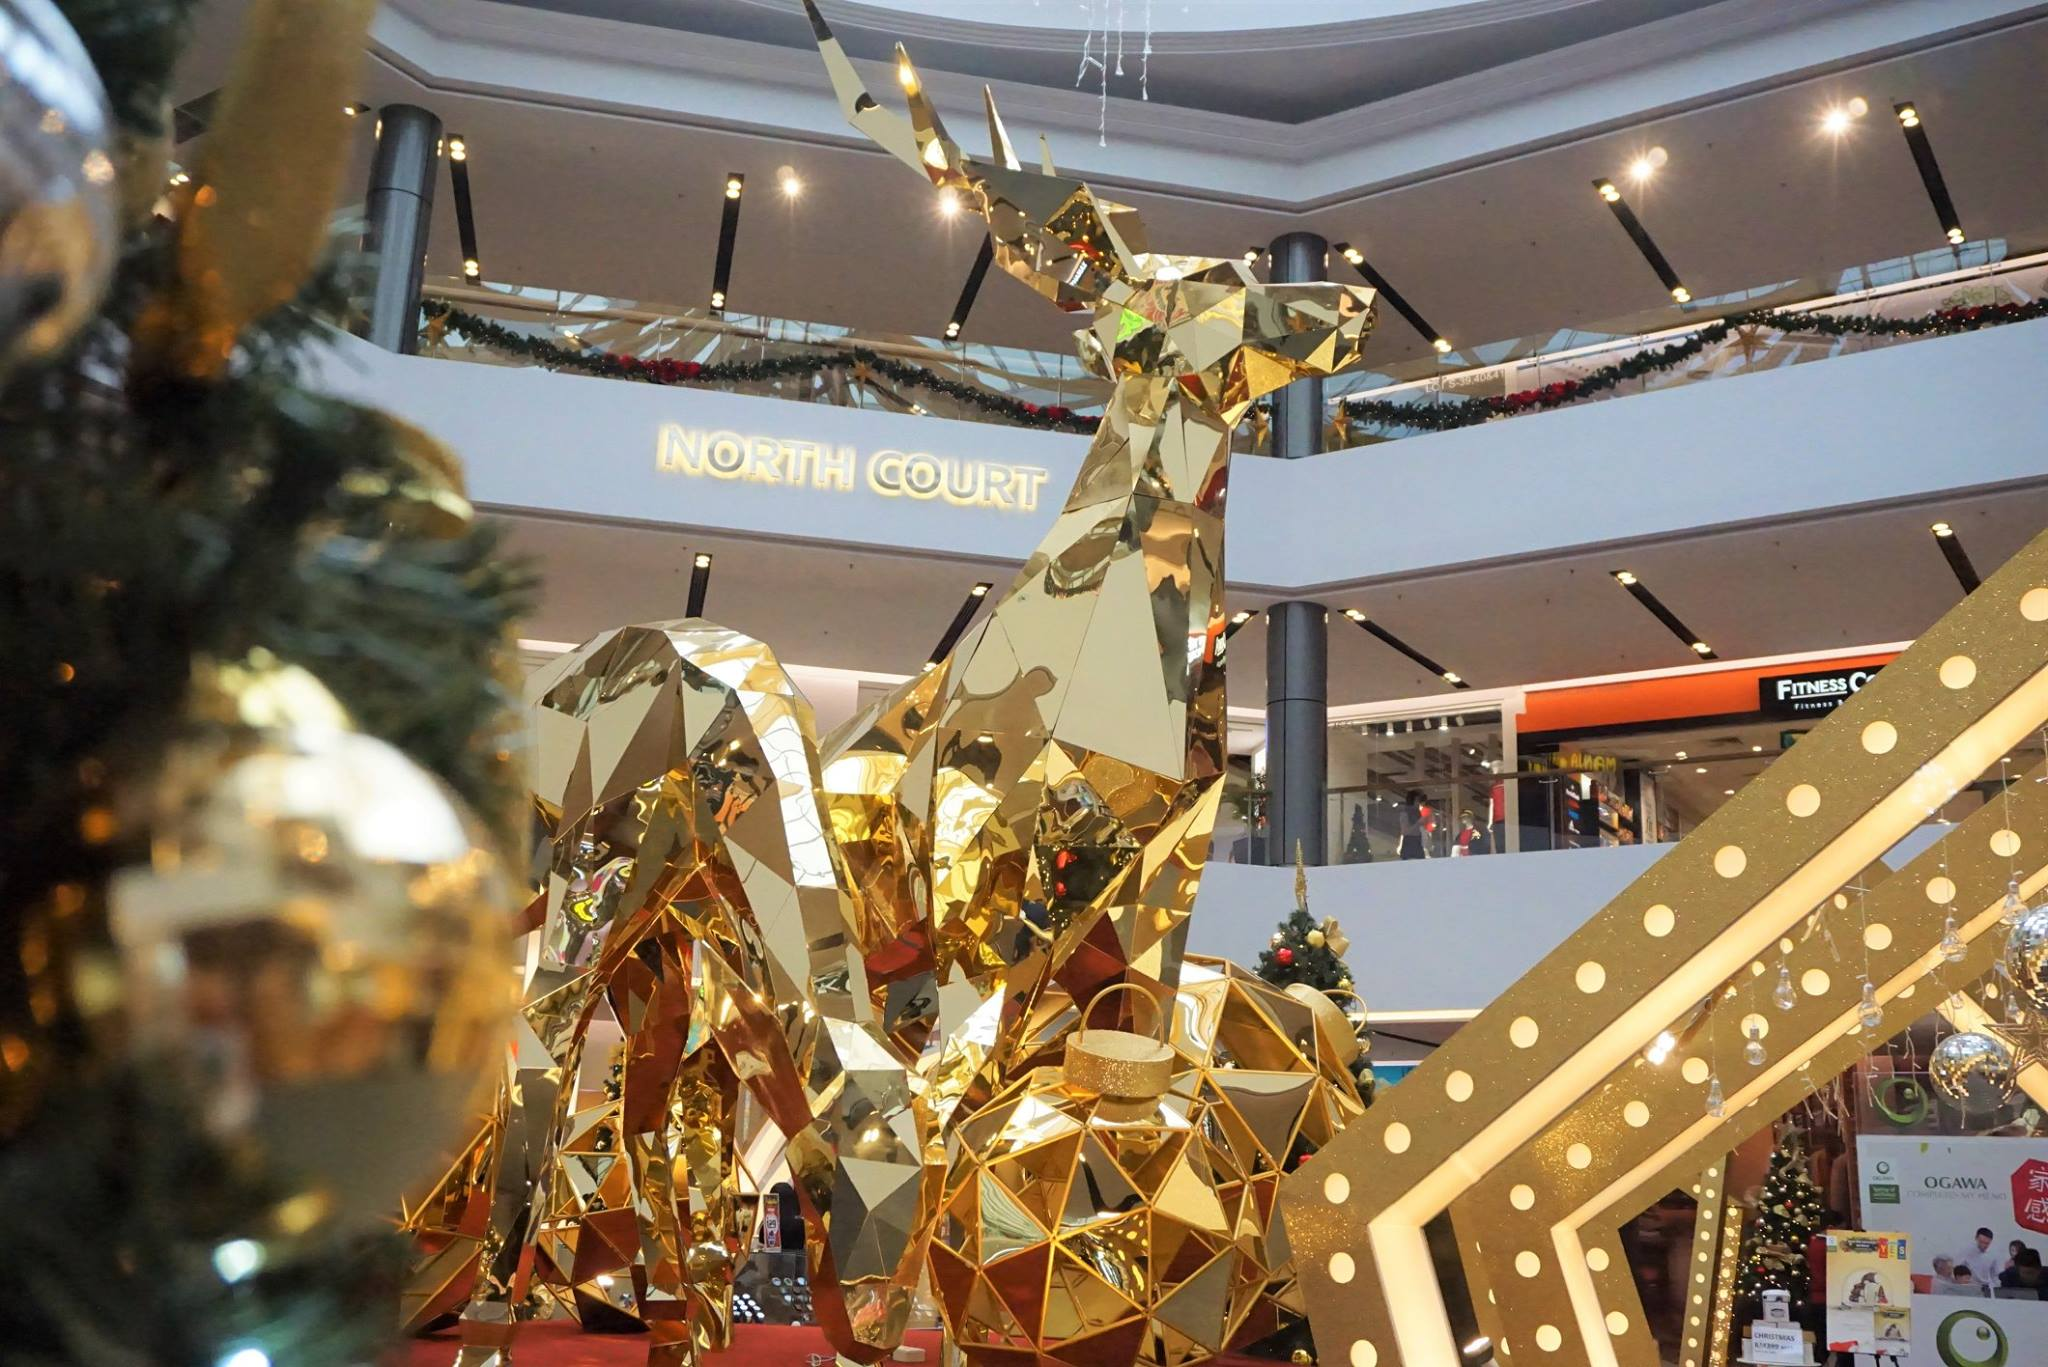 Image from IOI Mall Puchong